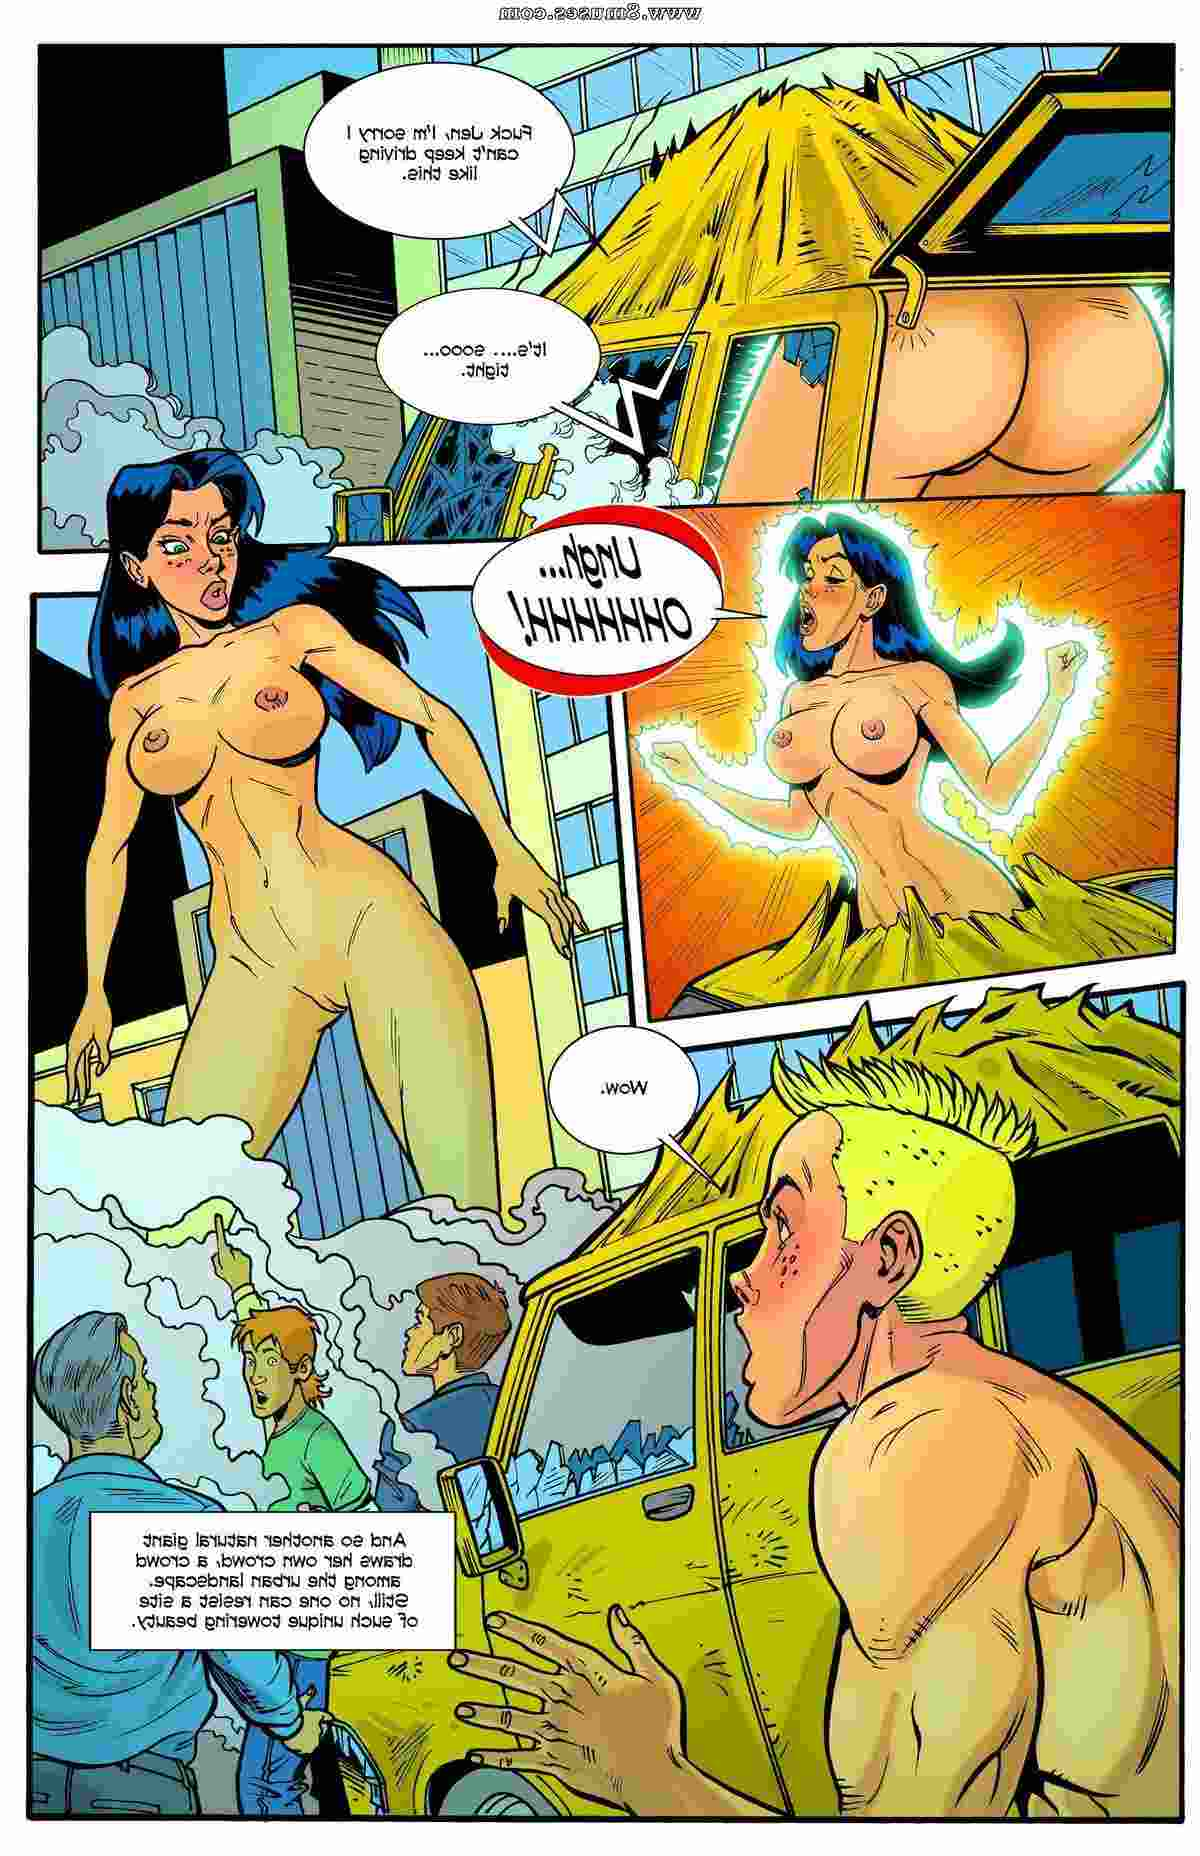 Giantess-Club-Comics/The-Legendary-Tree-Of-Paula-Bunyan The_Legendary_Tree_Of_Paula_Bunyan__8muses_-_Sex_and_Porn_Comics_22.jpg